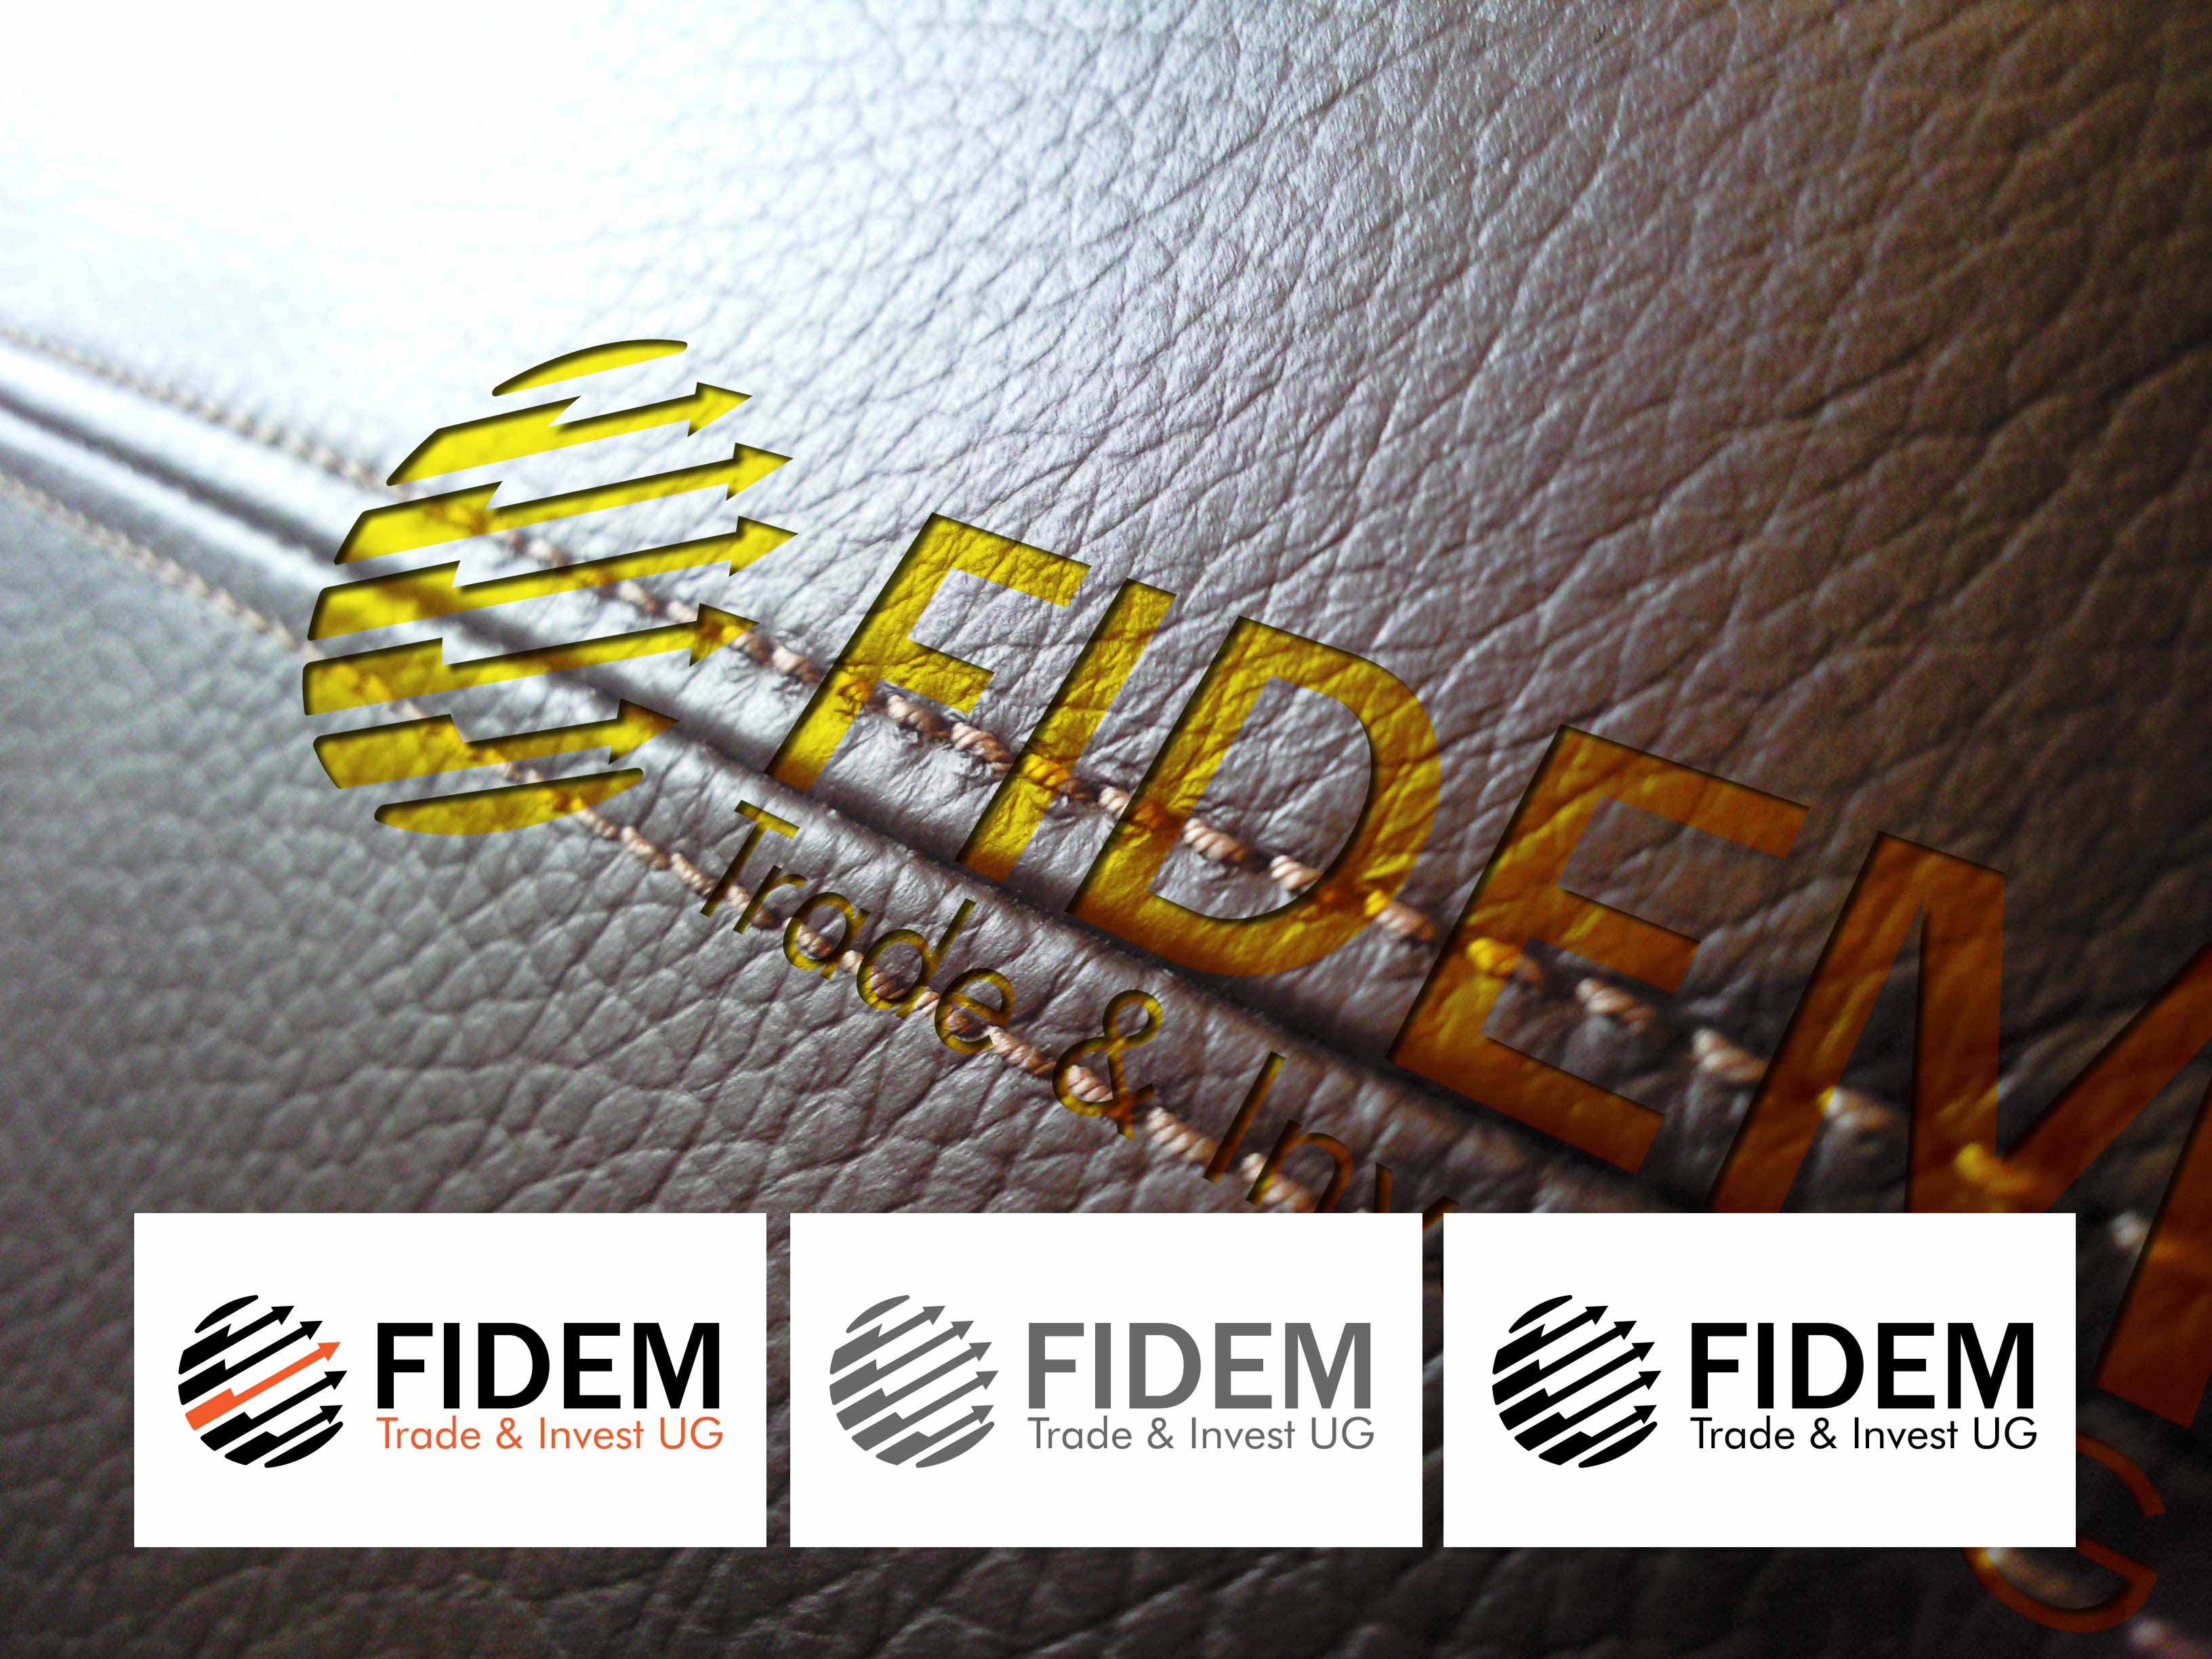 Logo Design by lagalag - Entry No. 322 in the Logo Design Contest Professional Logo Design for FIDEM Trade & Invest UG.